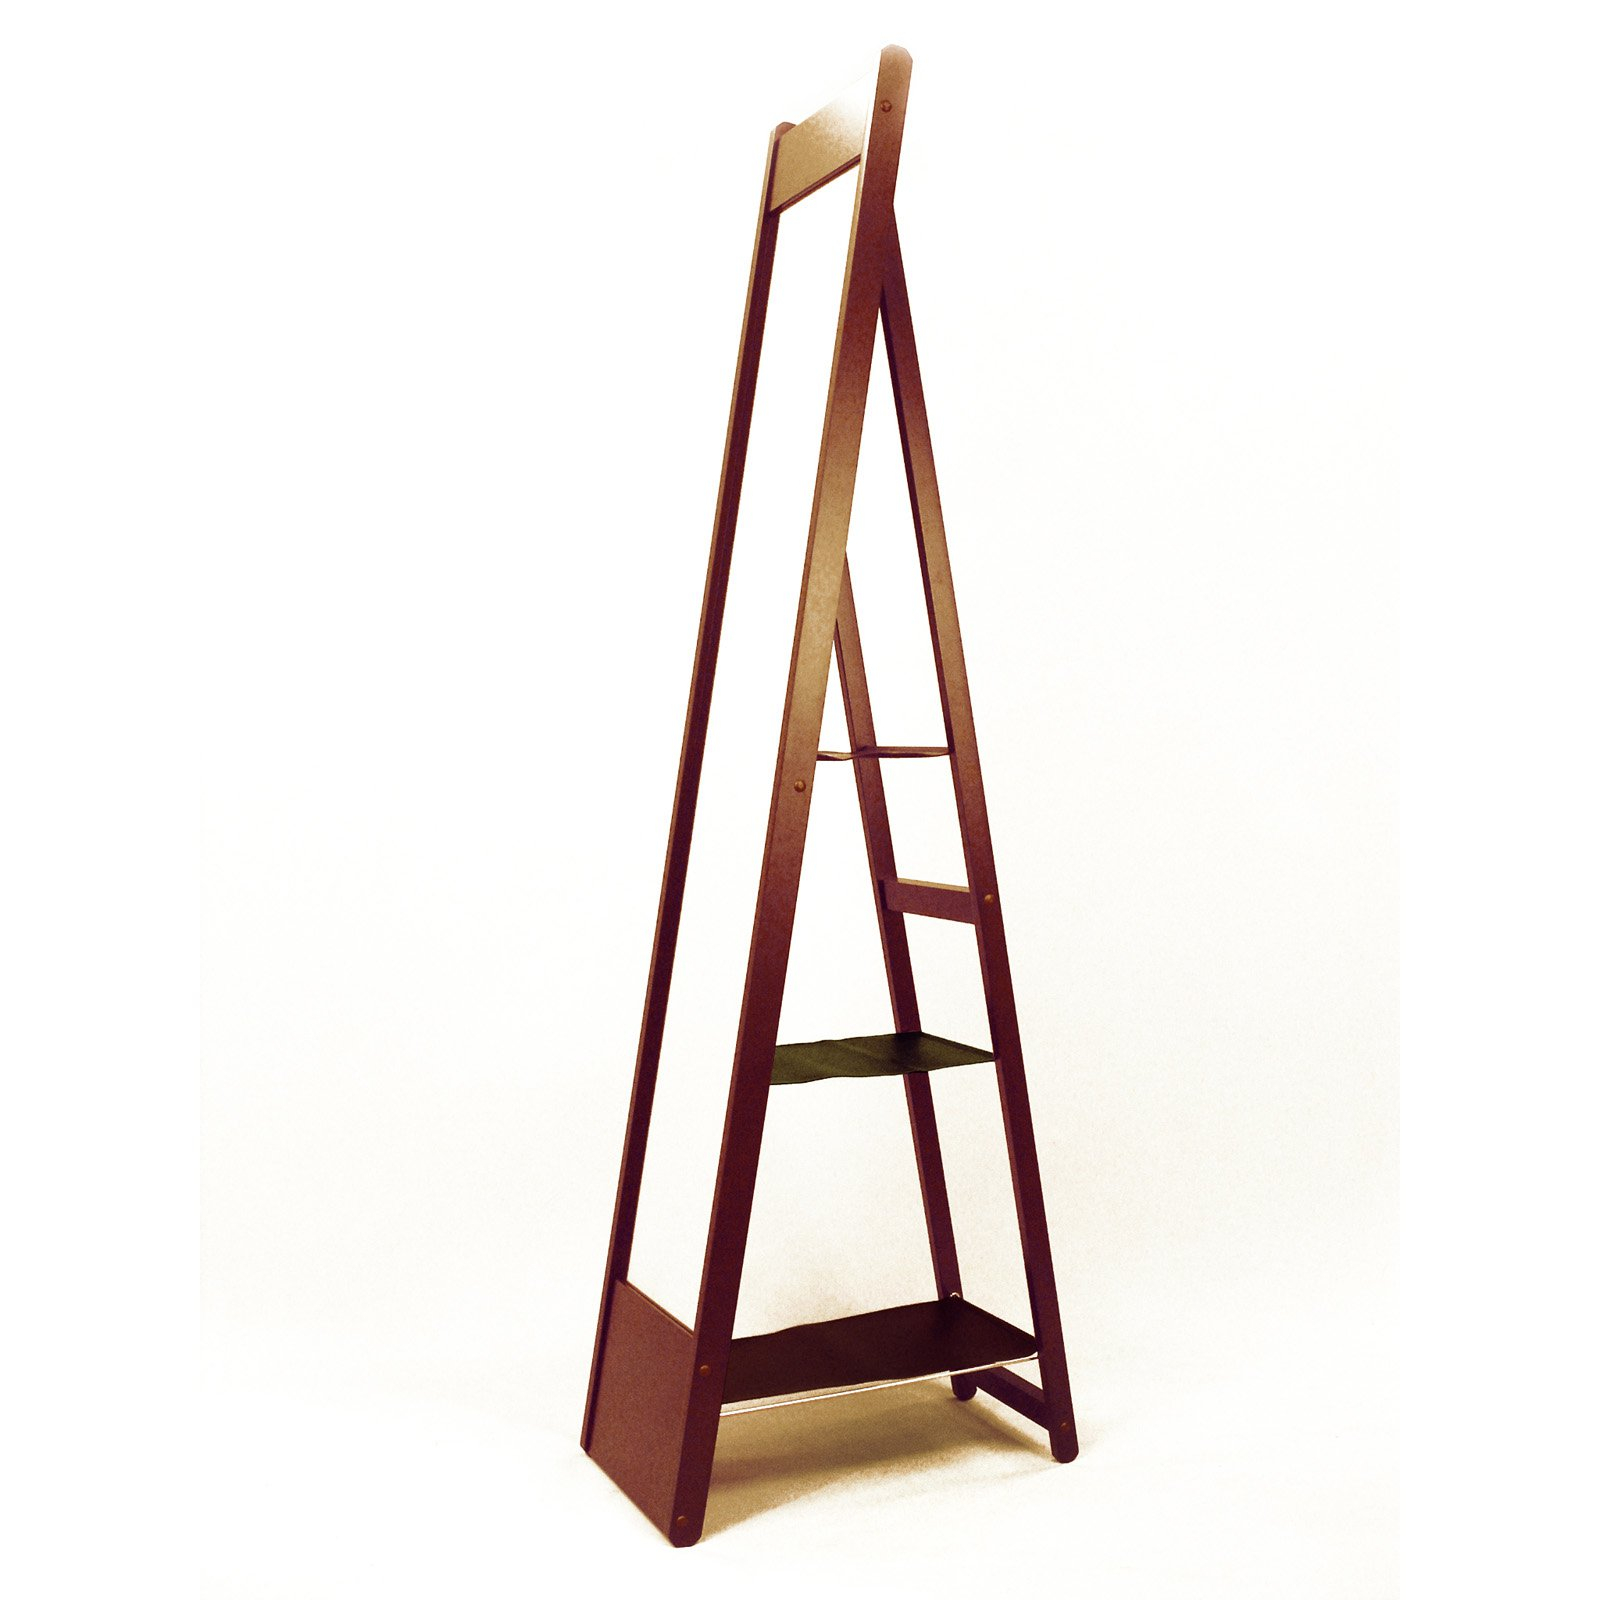 Proman Aris Full Length Easel Cheval Mirror with Shelves - Mahogany - 12.62